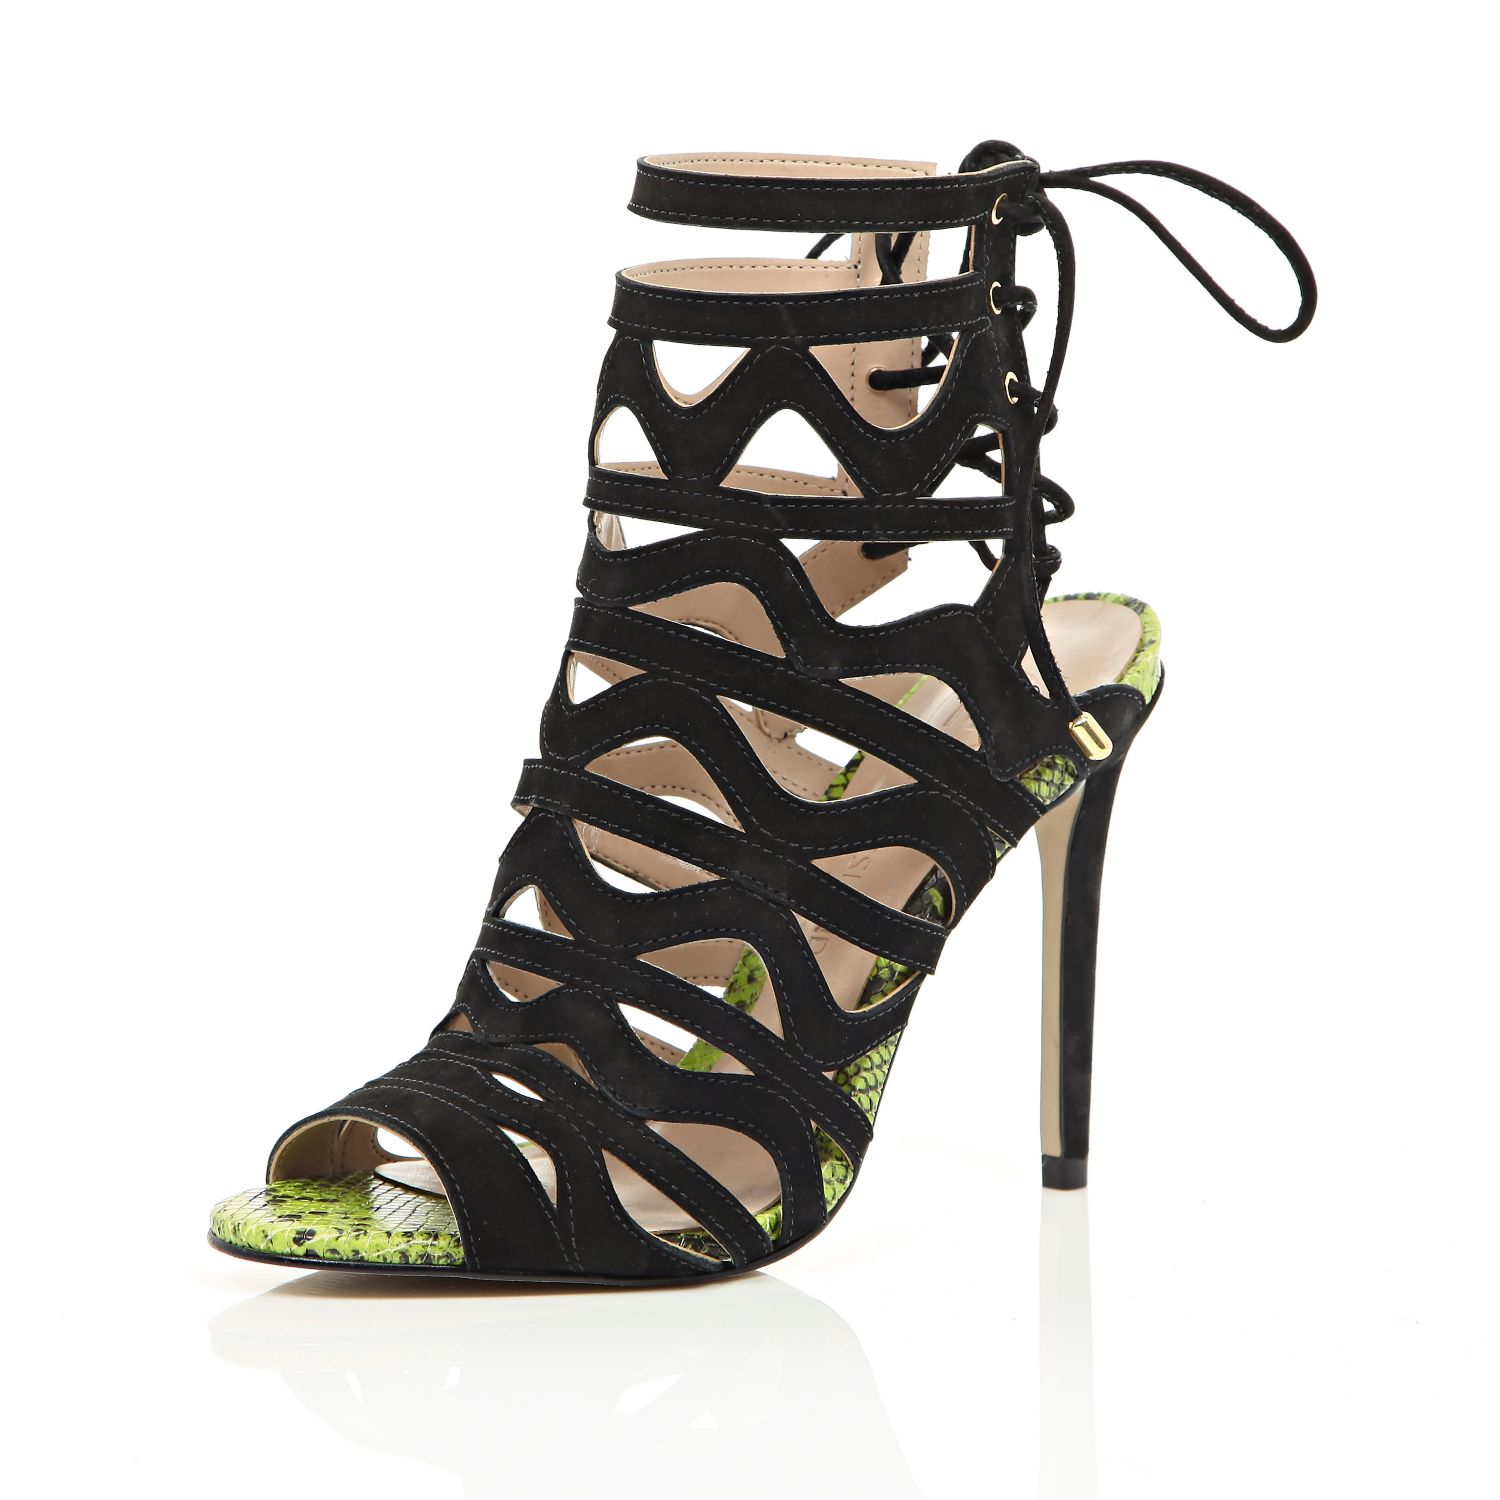 0c89ac82b70 River Island Black Leather Caged Lace-up Stiletto Heels